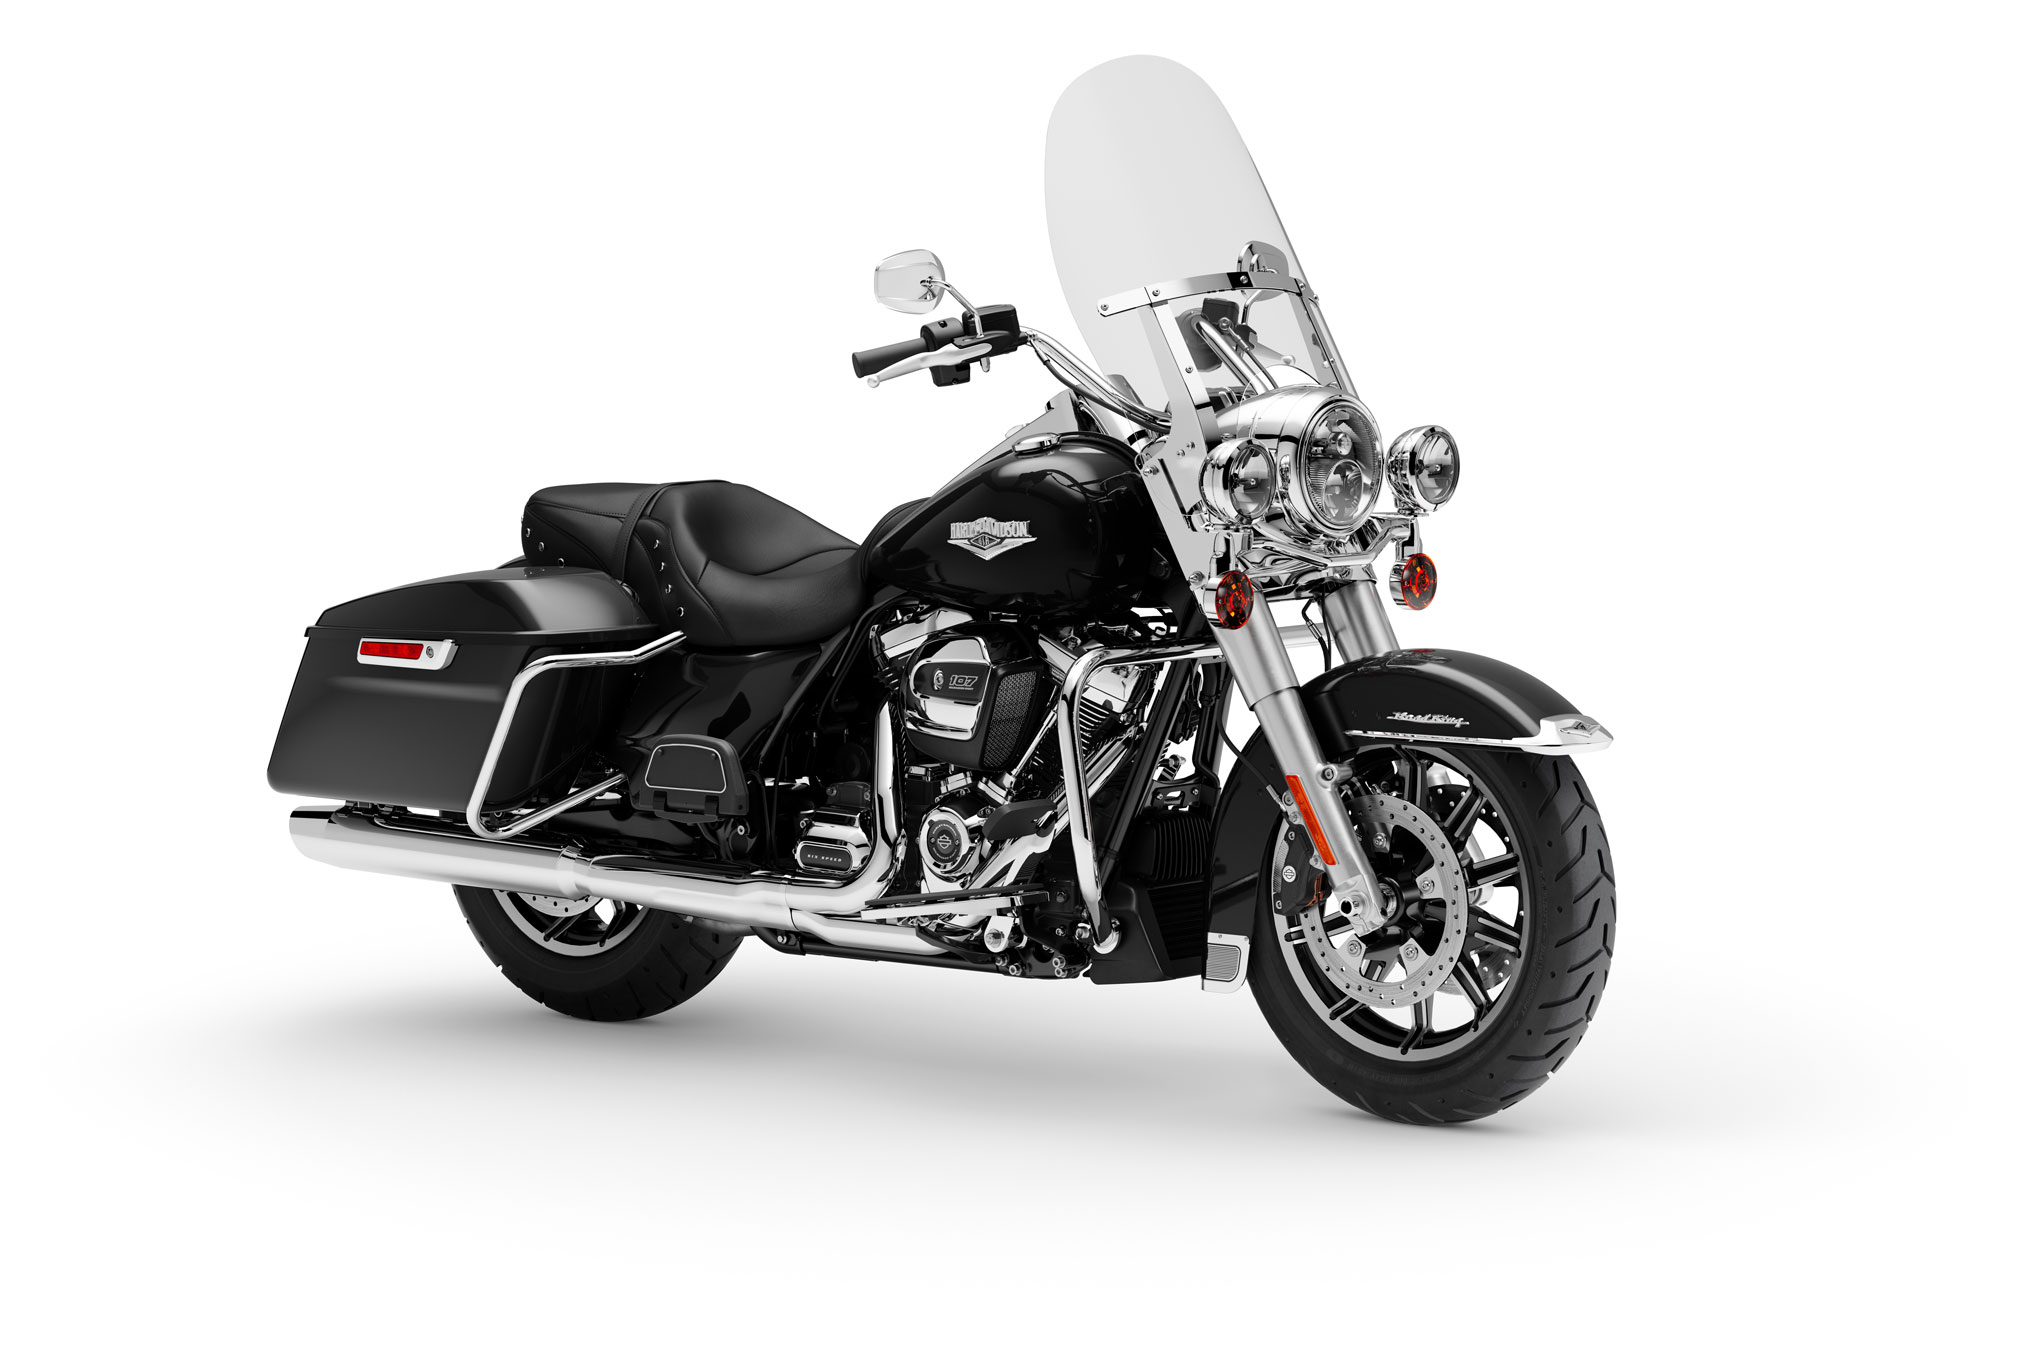 2019 Harley-Davidson Road King Guide • Total Motorcycle